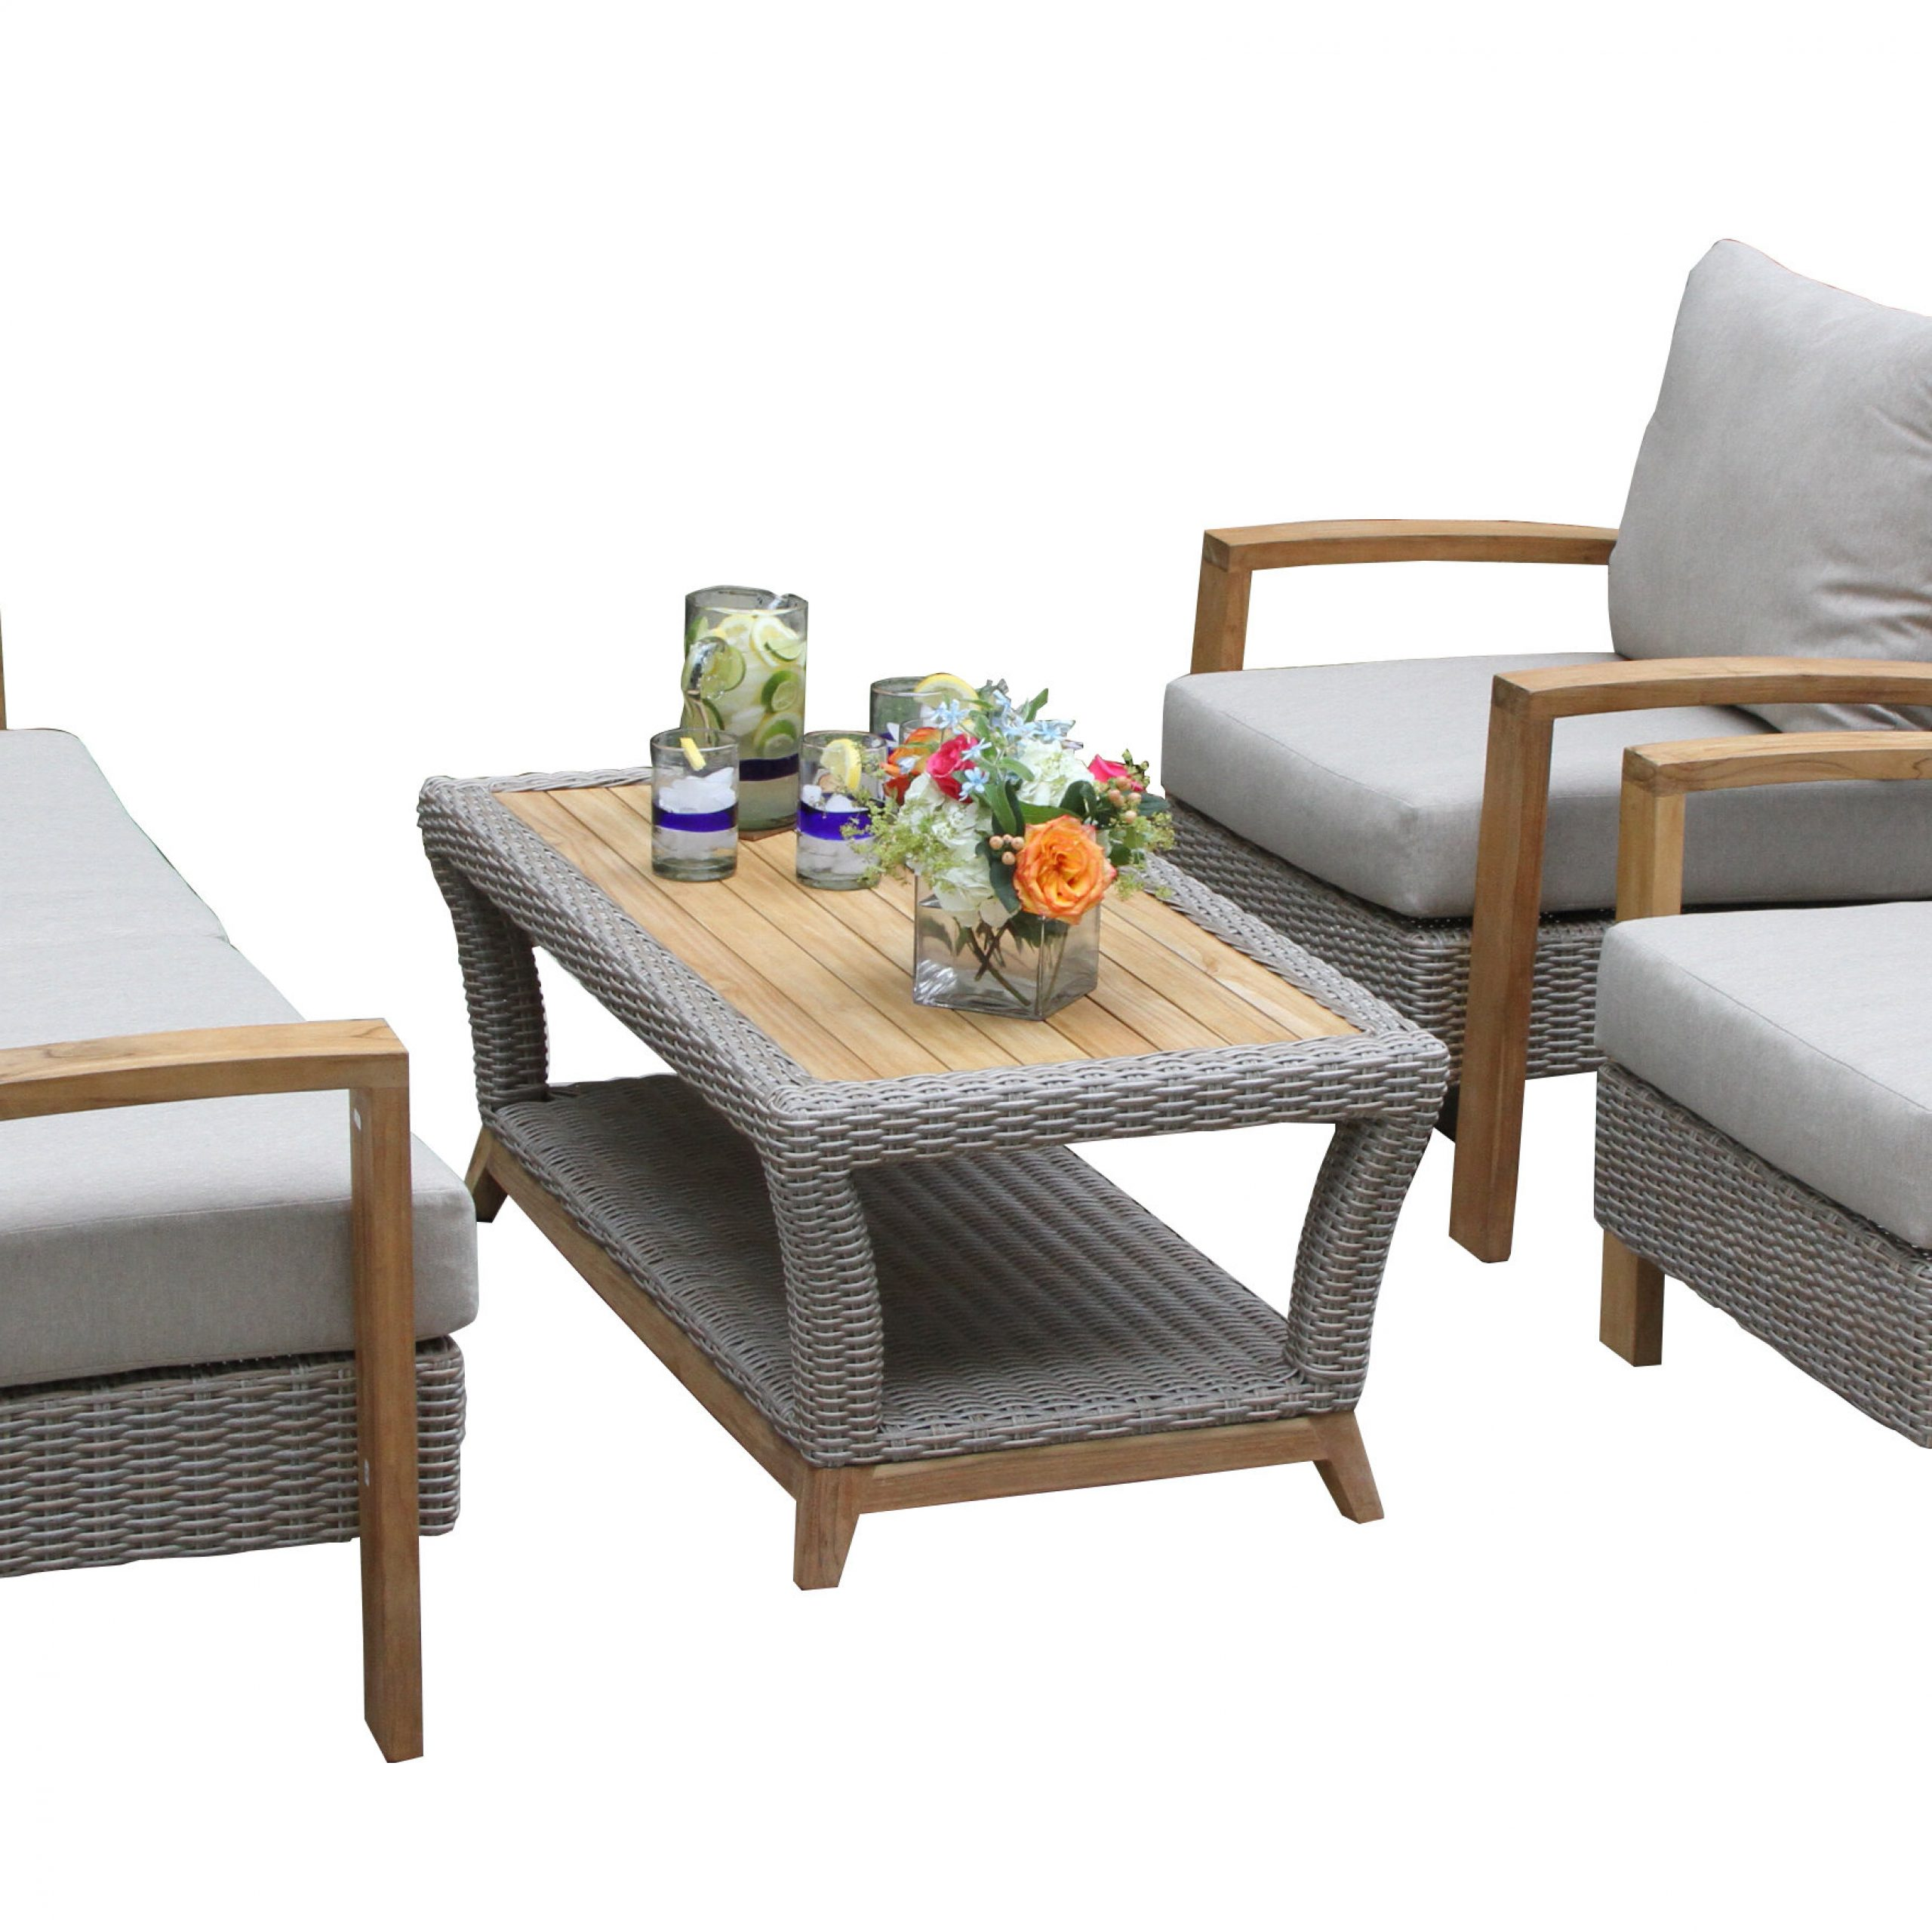 Hagler Outdoor Loveseats With Cushions Inside 2019 Dillard 4 Piece Rattan Sofa Seating Group With Cushions (View 11 of 25)